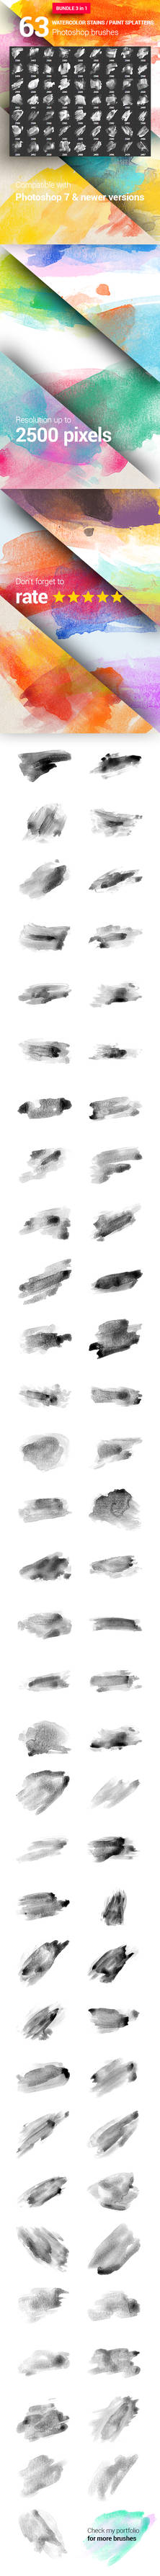 63 Watercolor Paint Stains Photoshop Brushes